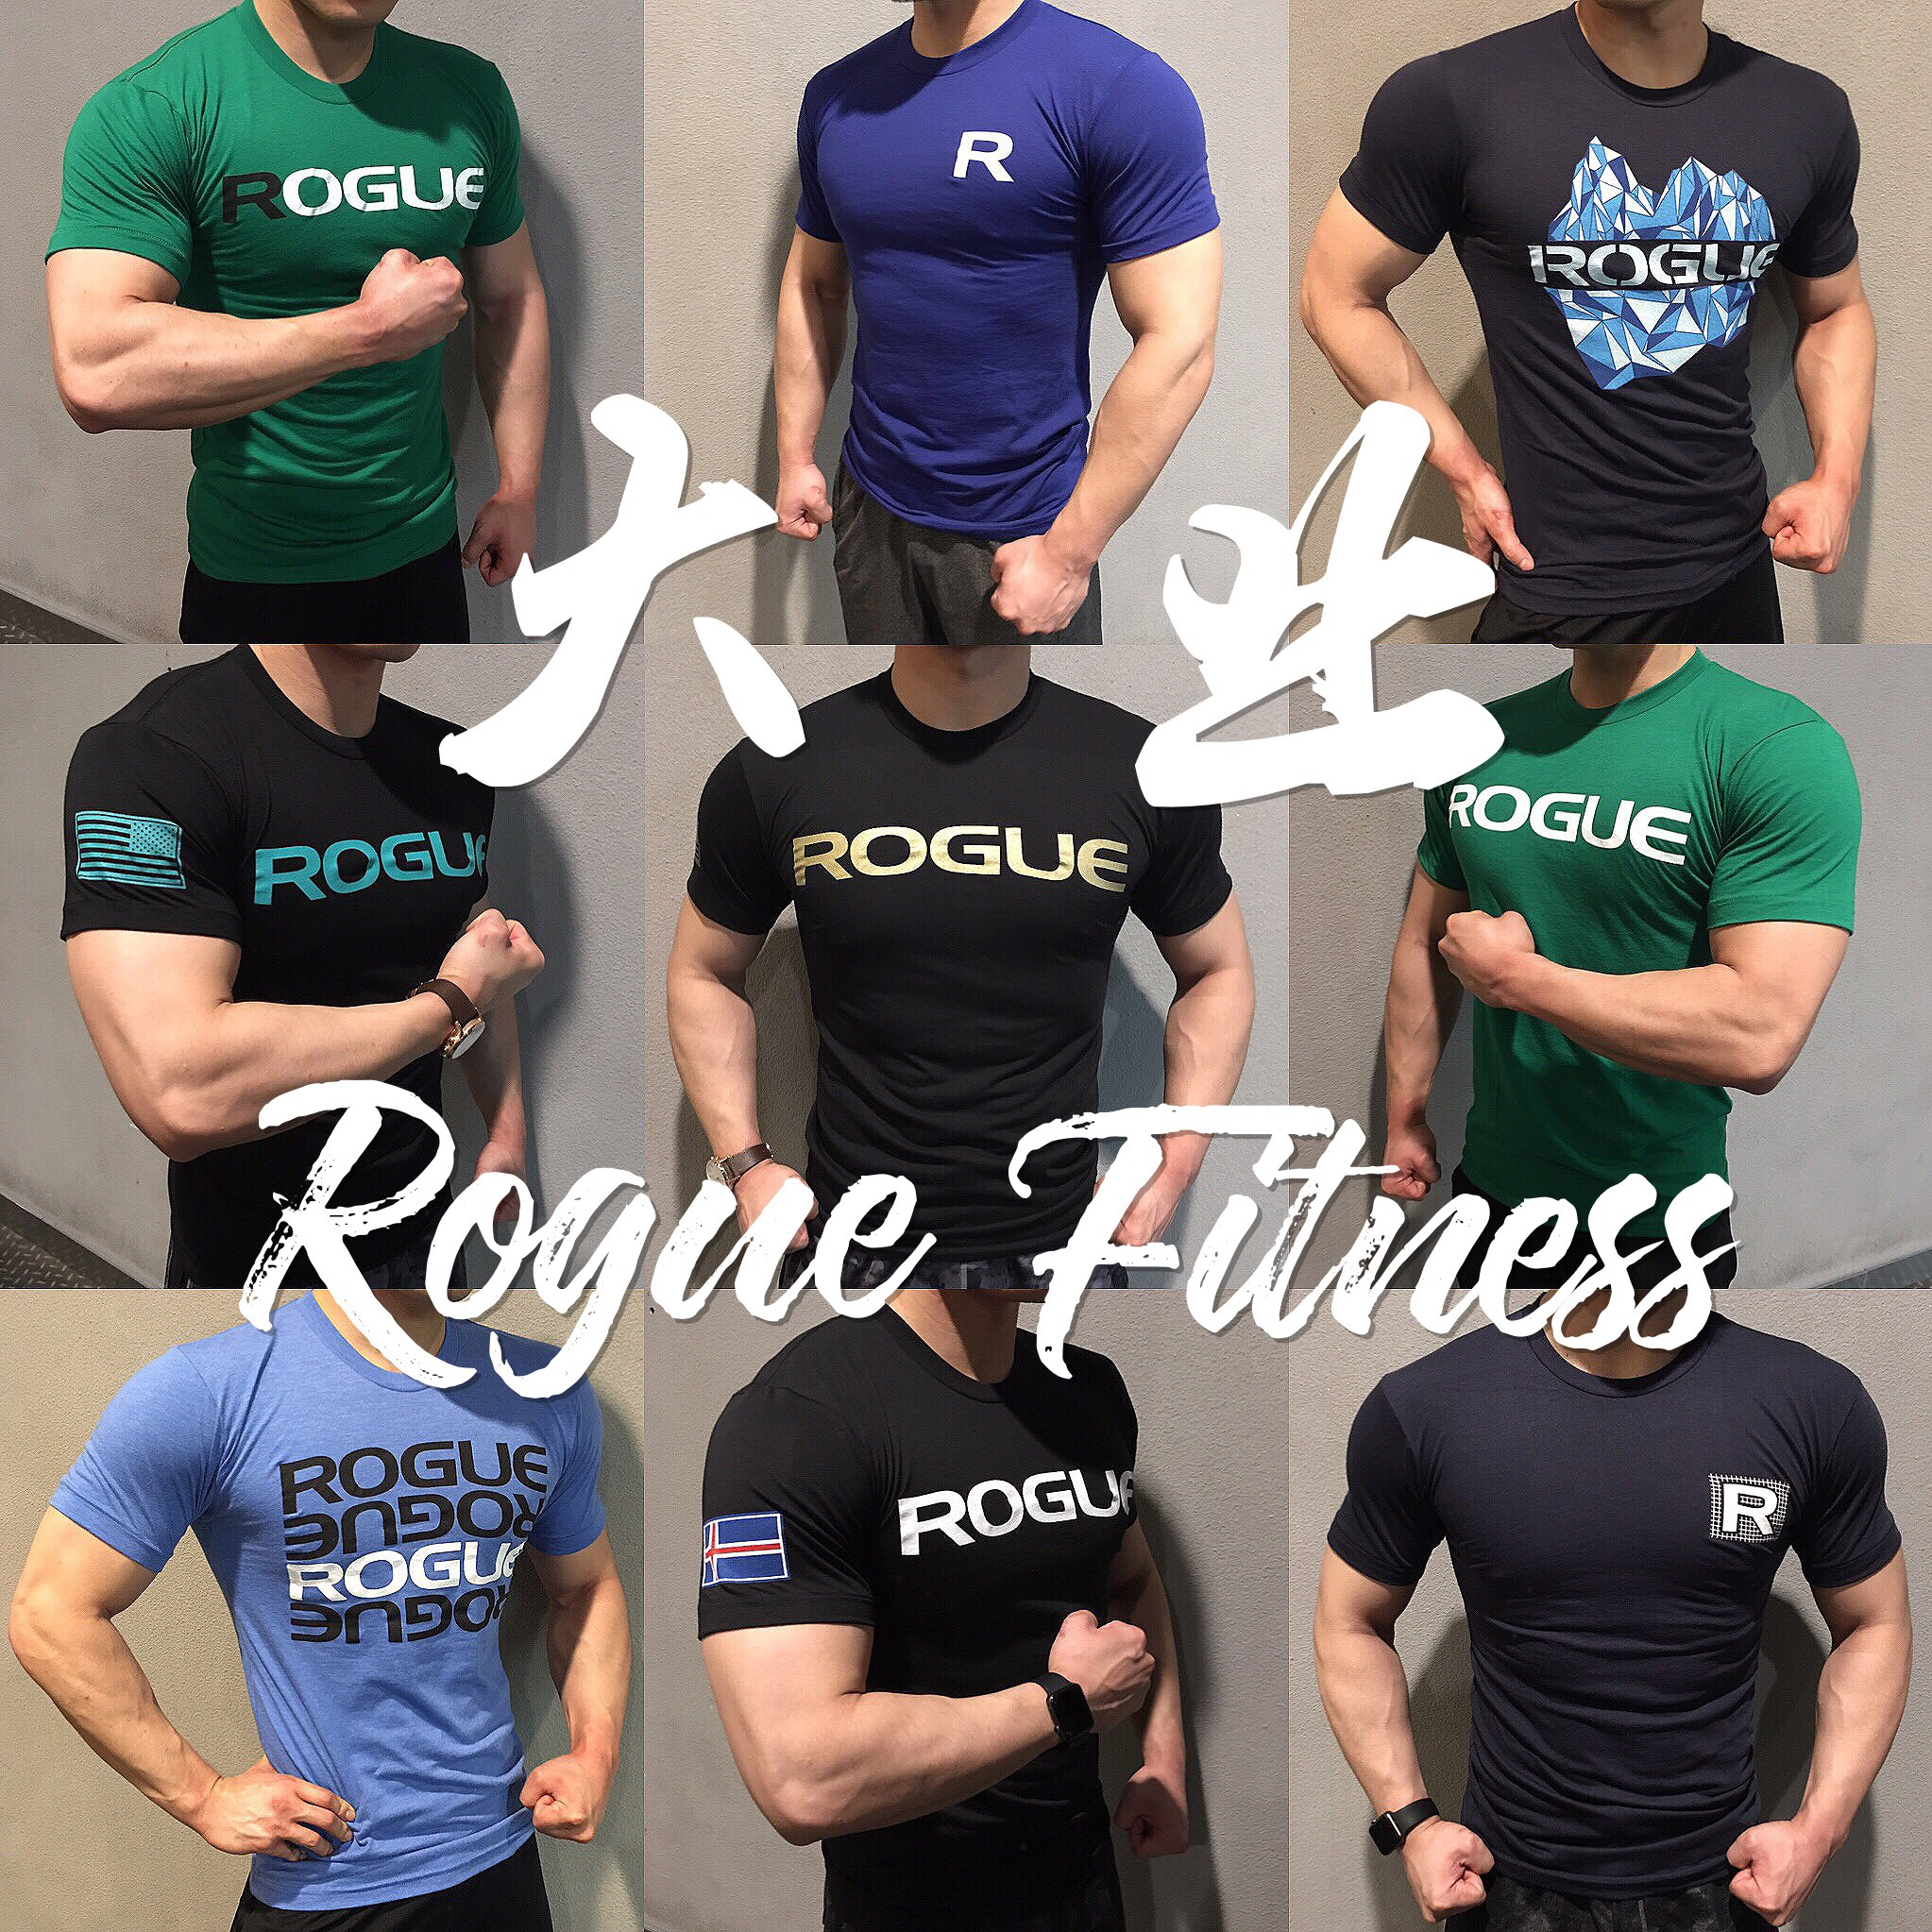 ... Rogue Fitness Shirts T Shirt Design Database cfd7e29342ca